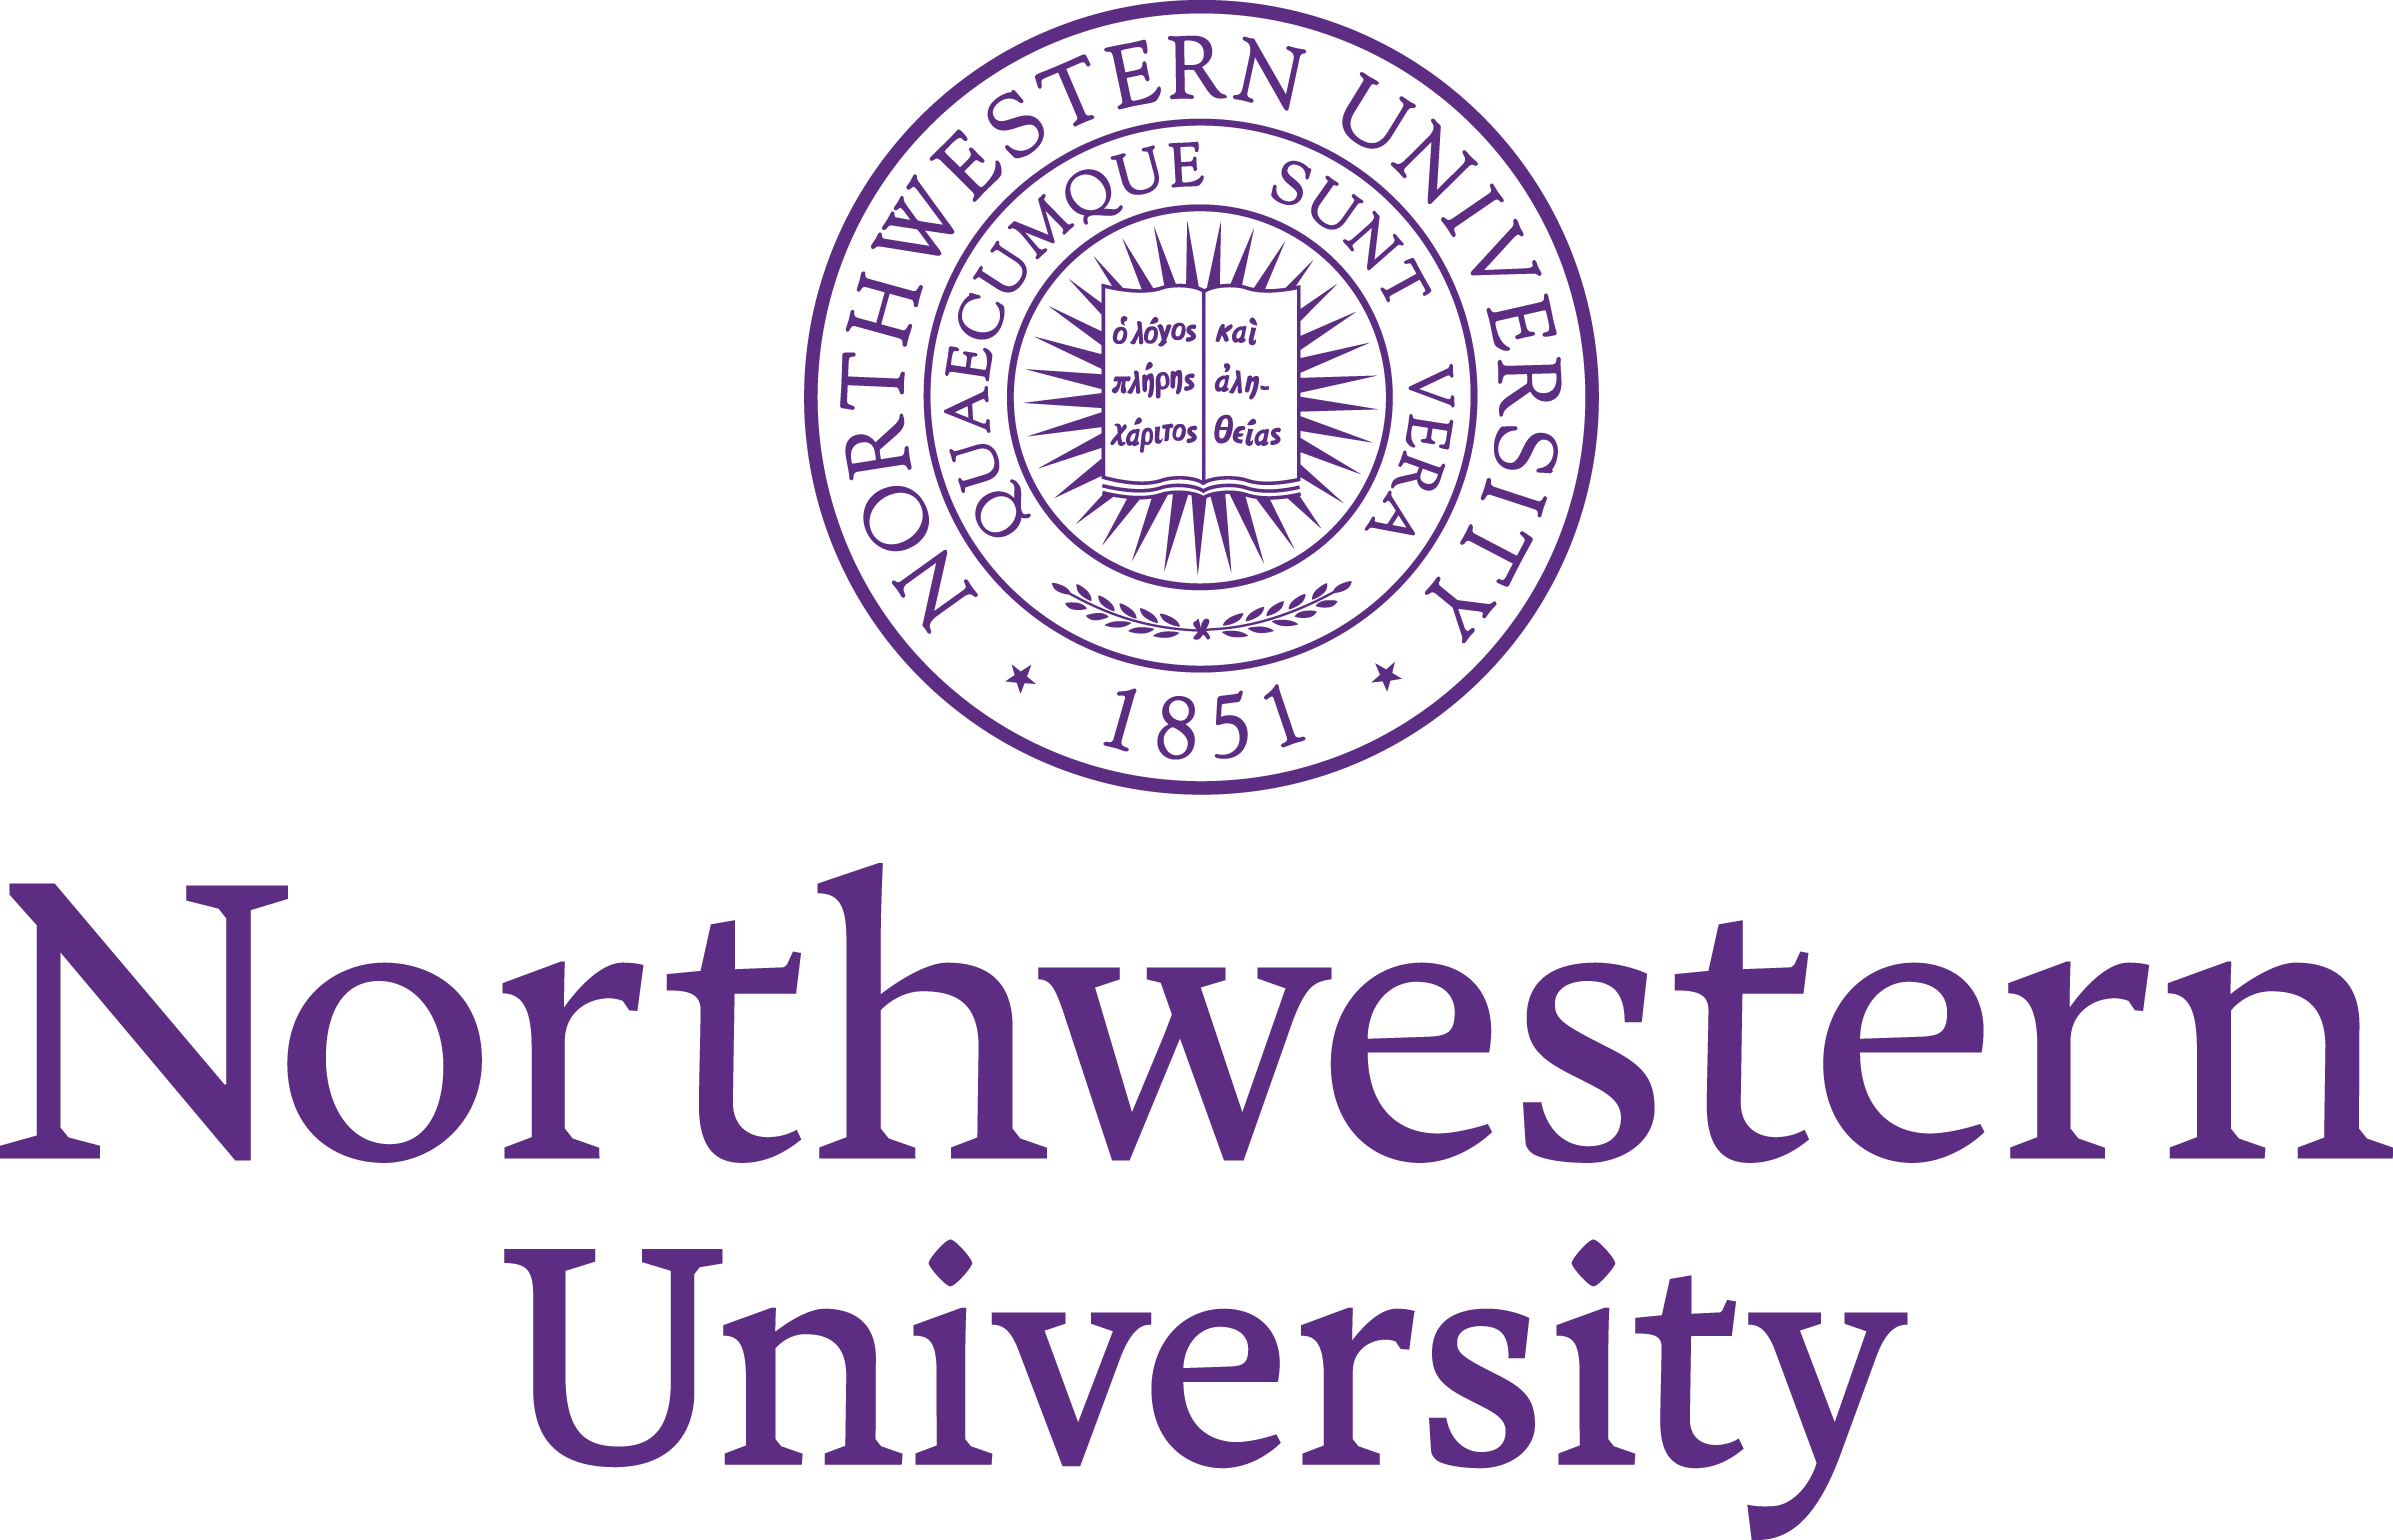 Northwestern University ogo